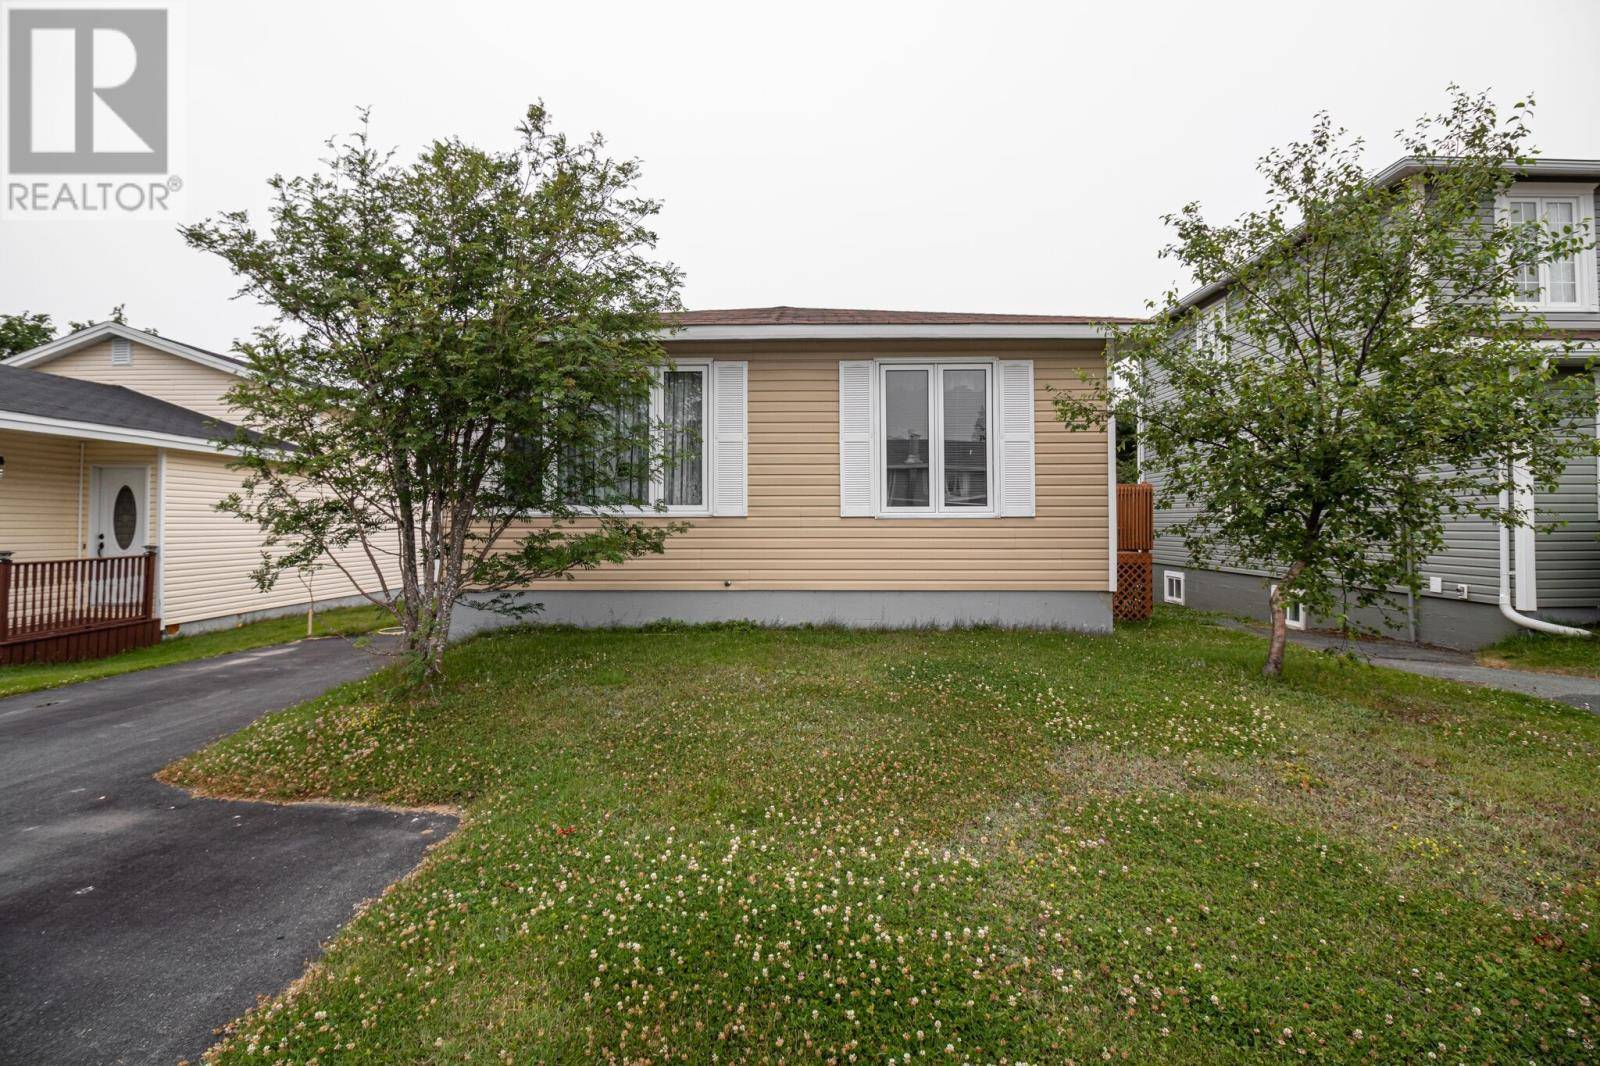 House for sale at 20 Harvard Dr Mt. Pearl Newfoundland - MLS: 1199480